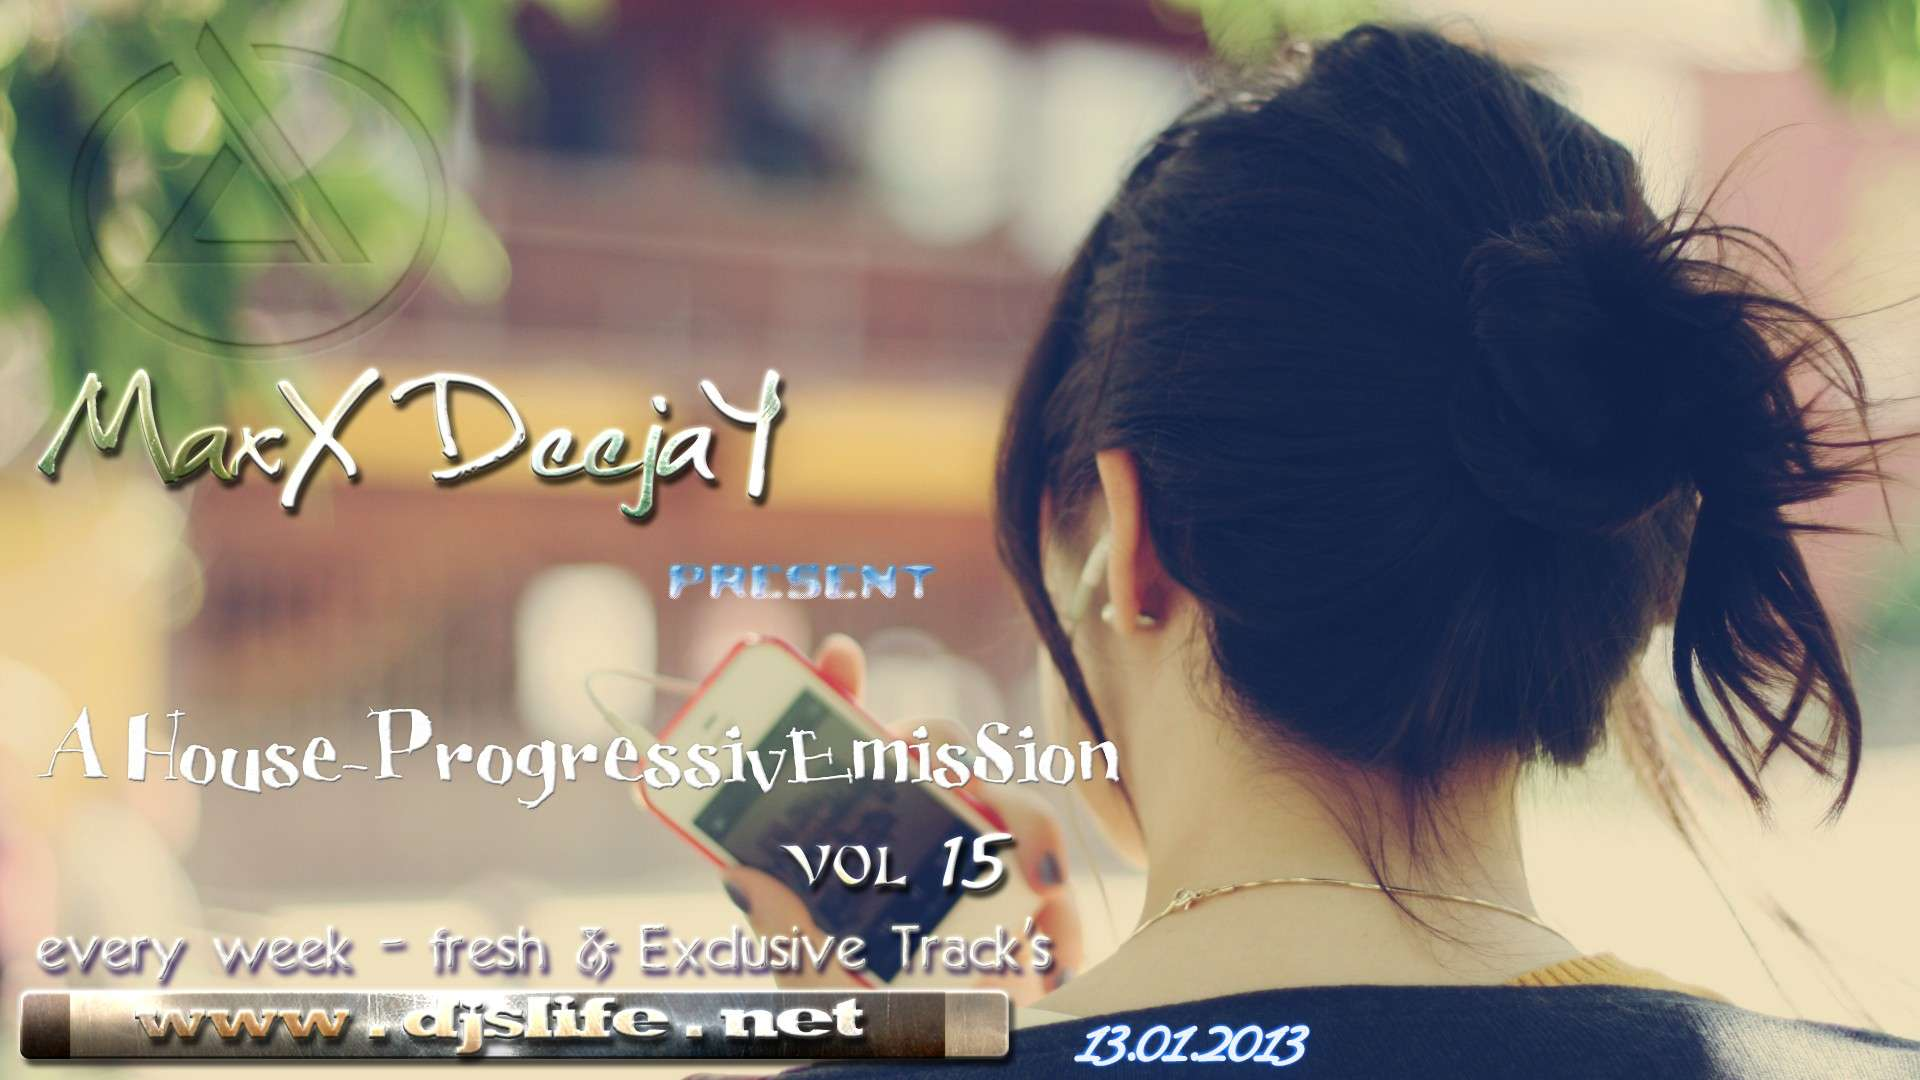 MaxX DeejaY - A House-ProgressivEmisSion vol.15 [13.01.2013]